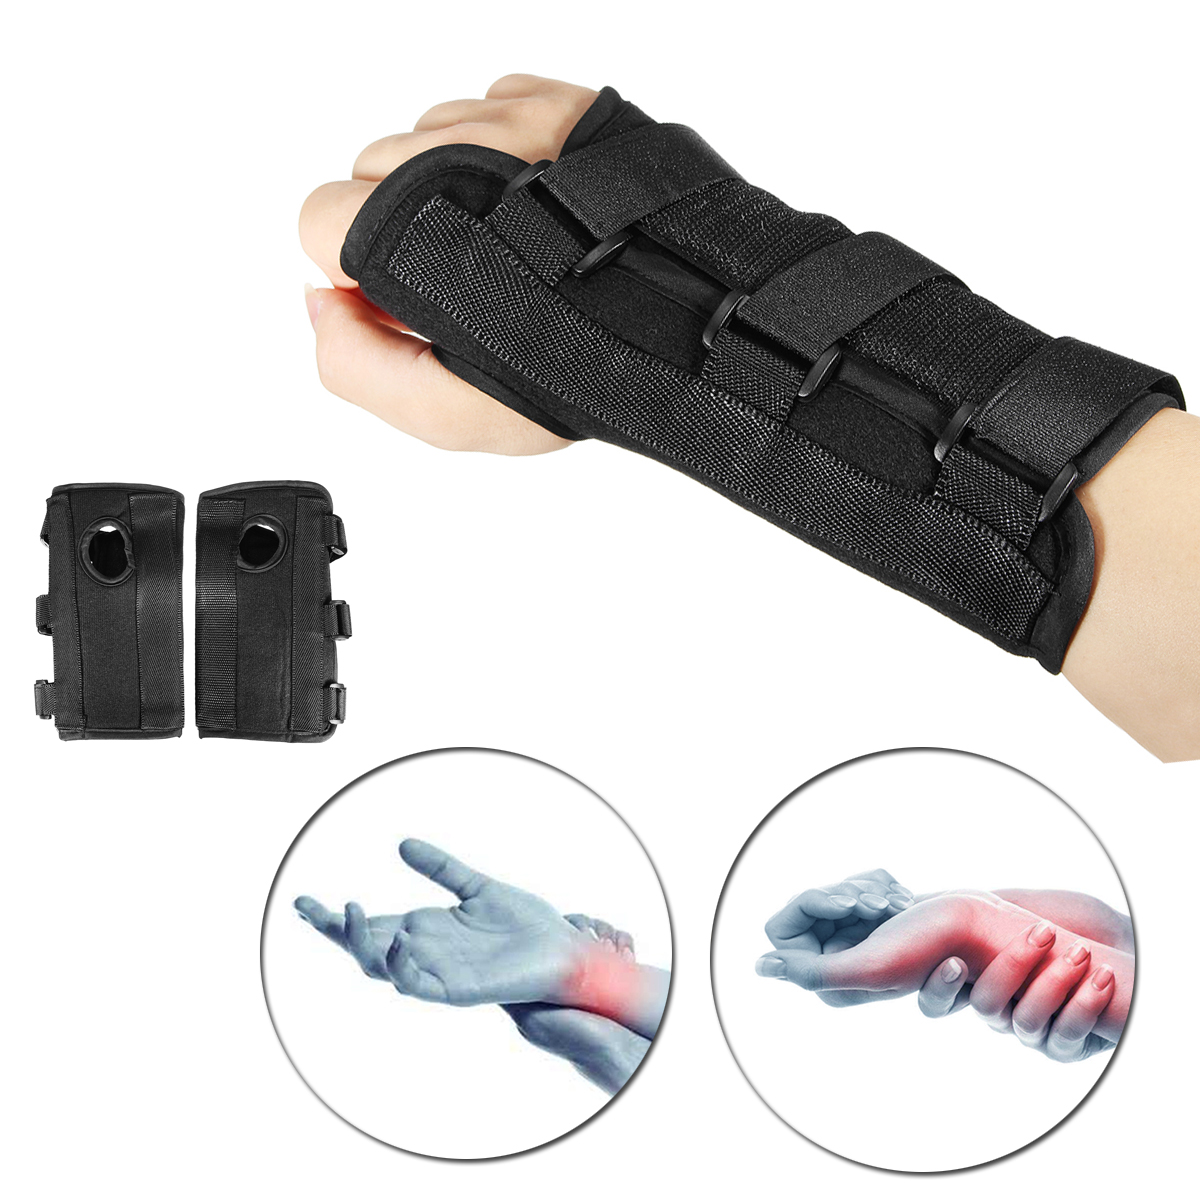 1 Pair Breathable Medical Carpal Tunnel Wrist Brace Right Left H